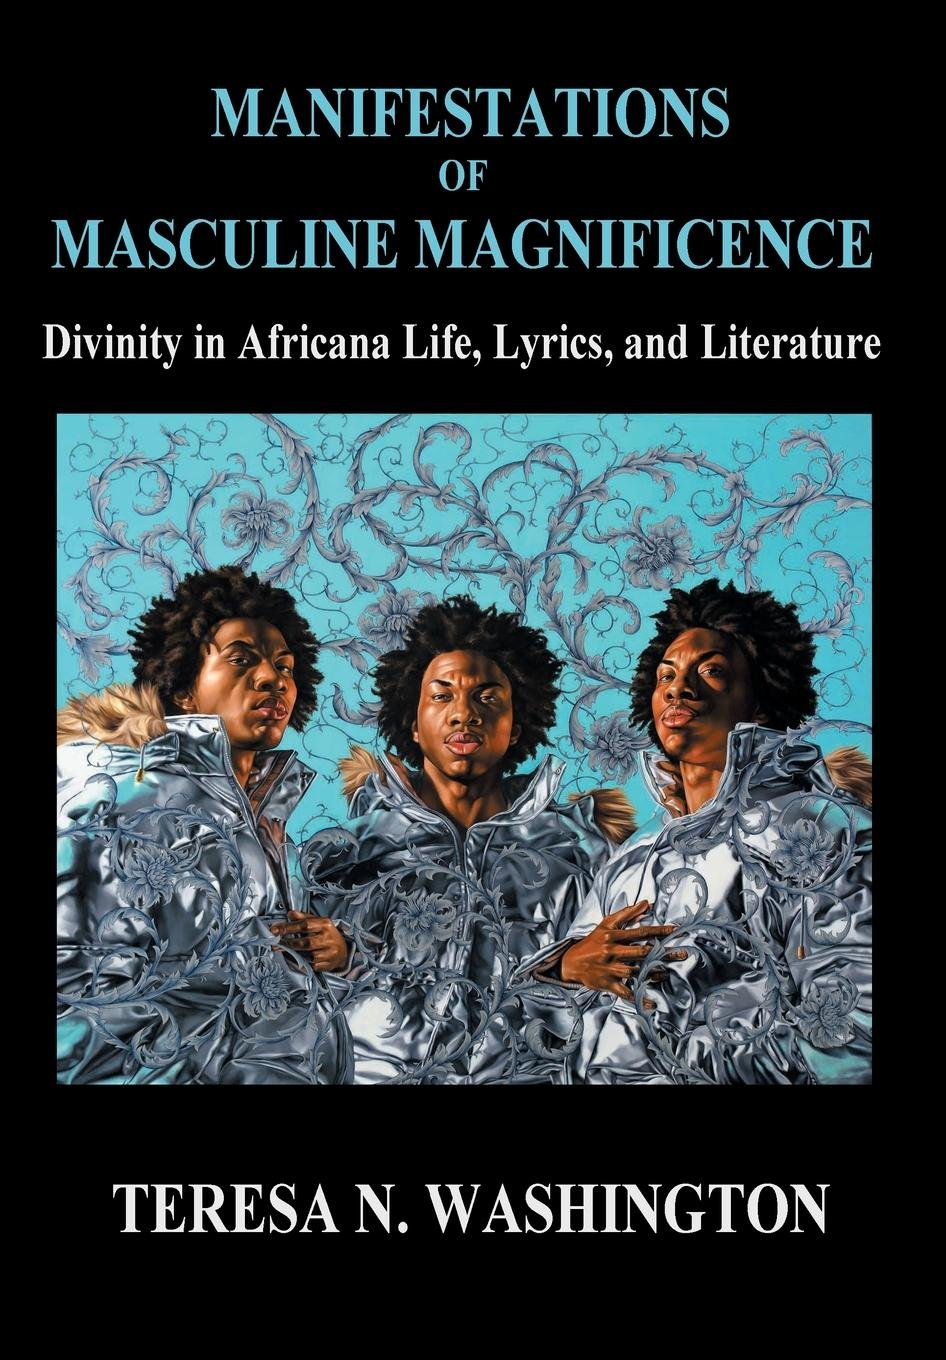 Manifestations of Masculine Magnificence: Divinity in Africana Life, Lyrics, and Literature PDF